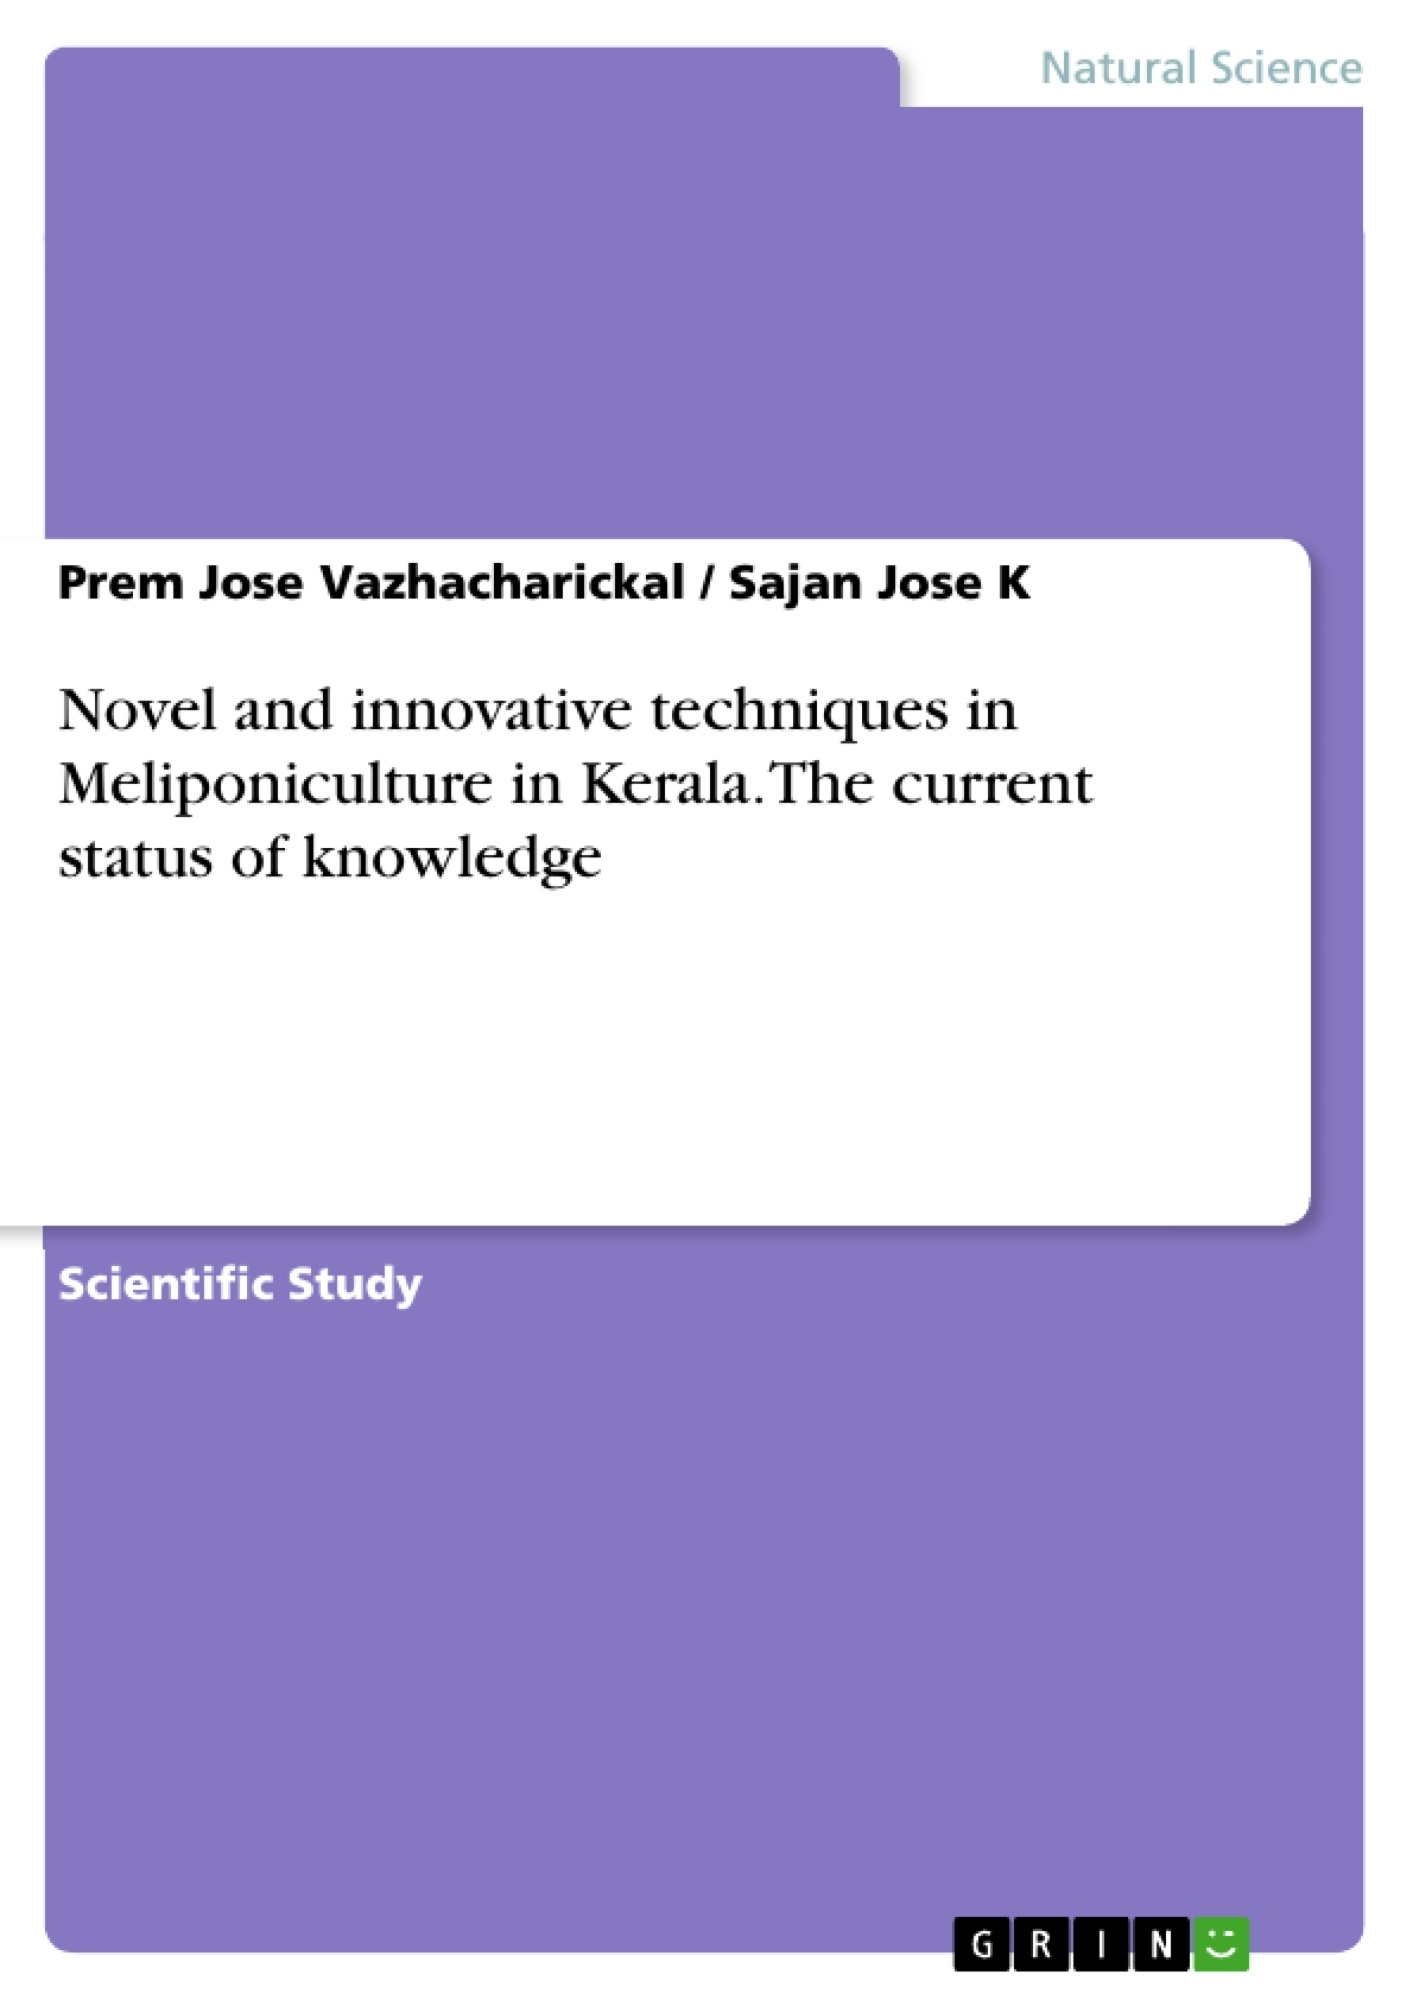 Title: Novel and innovative techniques in Meliponiculture in Kerala. The current status of knowledge